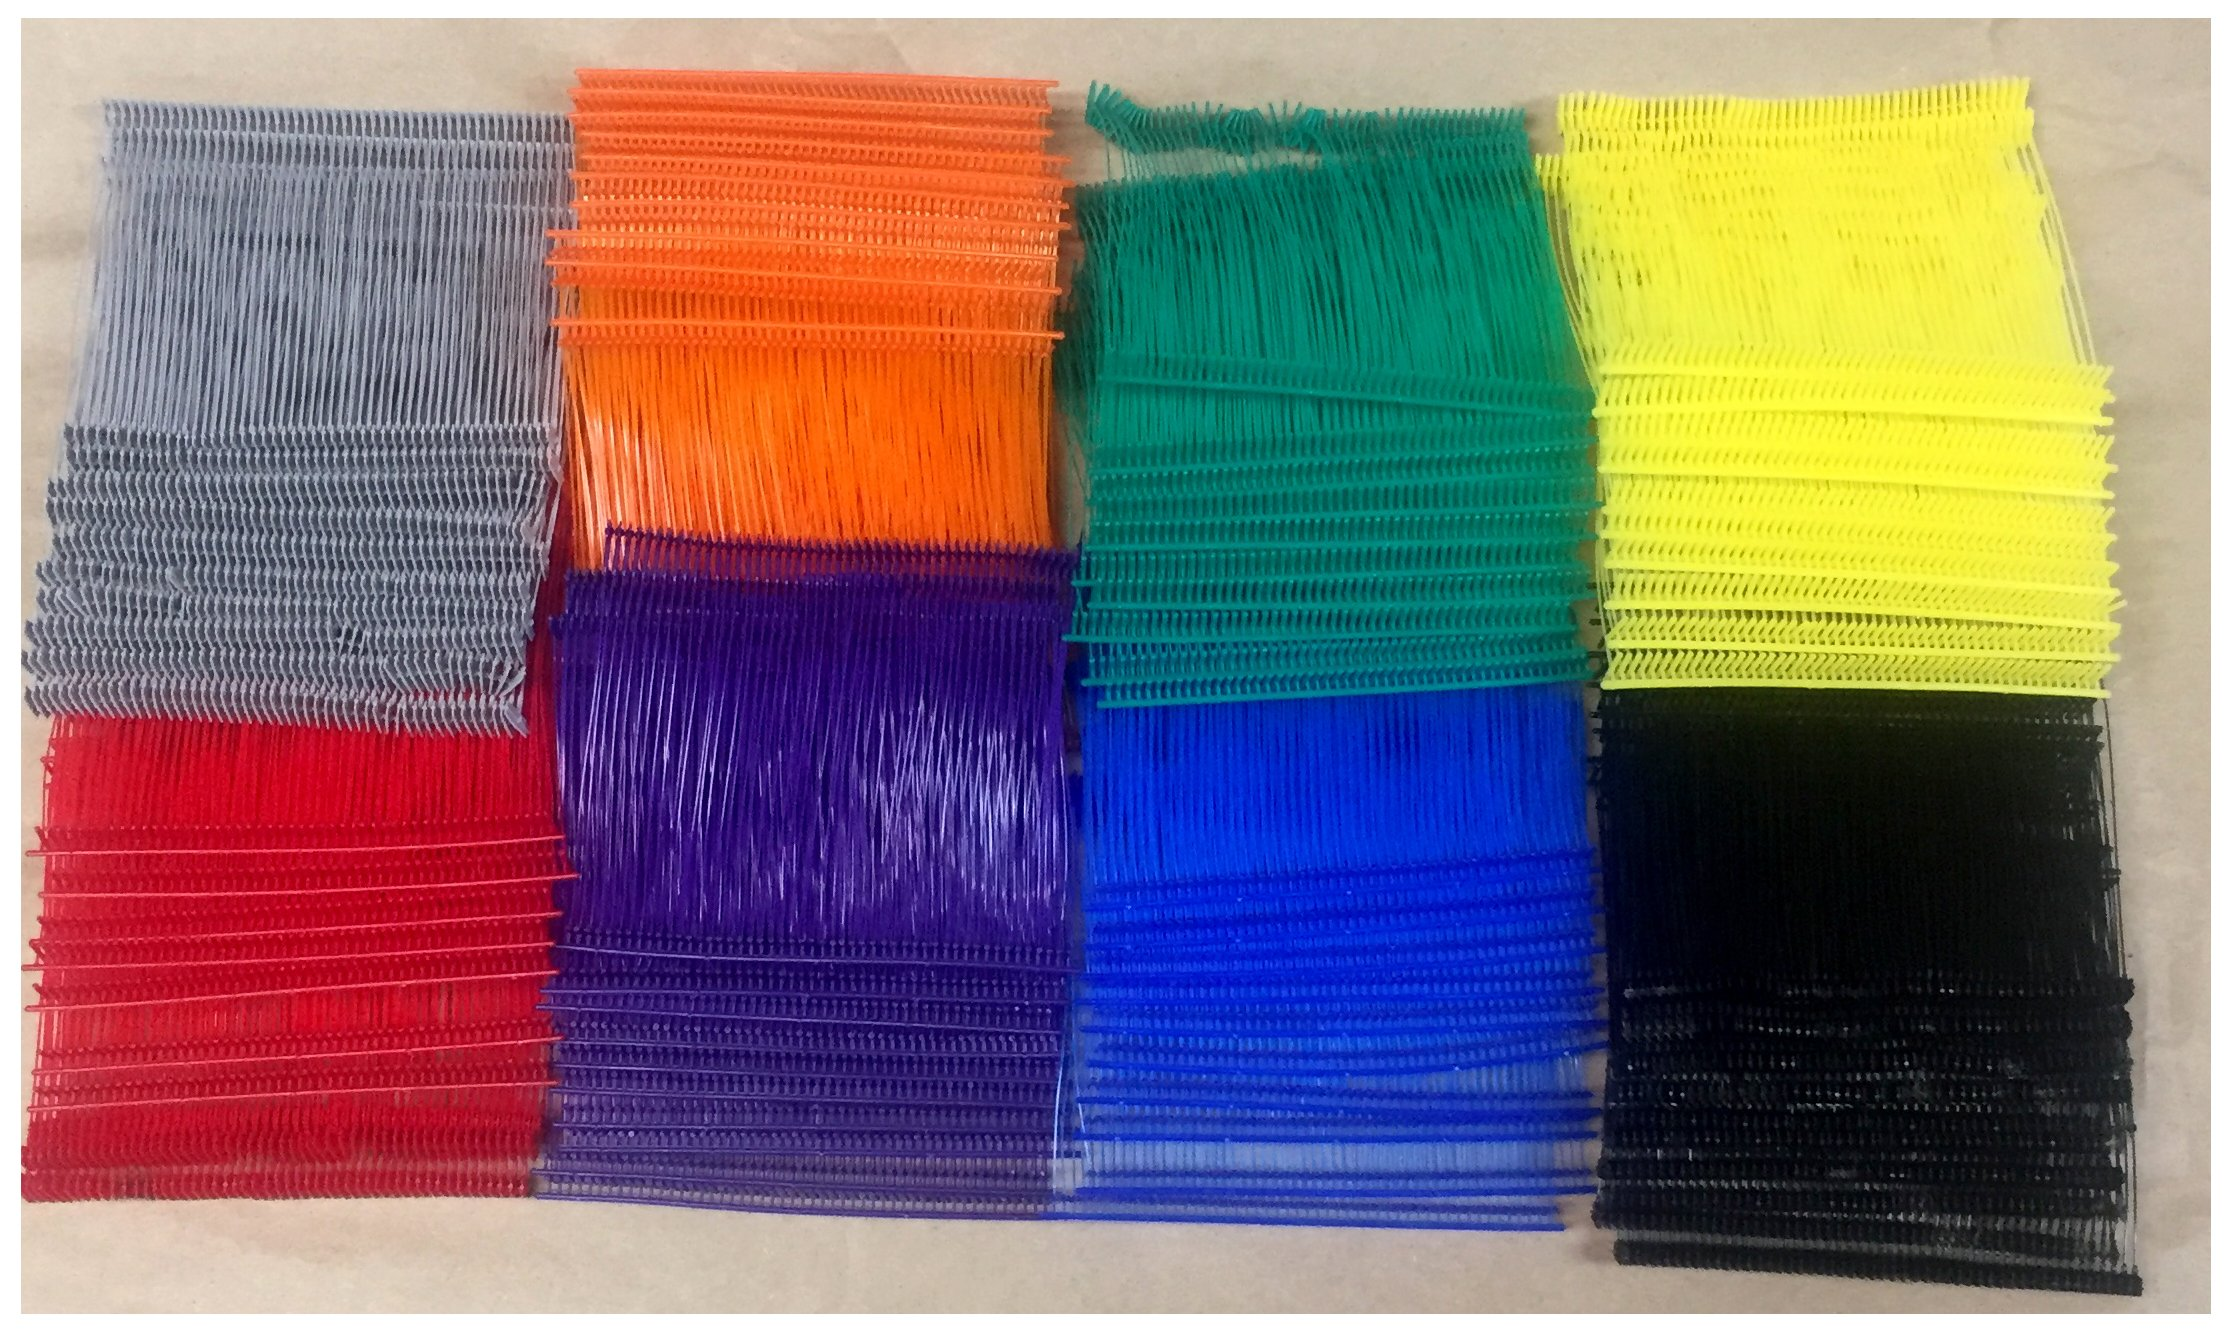 "Standard Tagging Gun Barbs Fasteners 3"" 500 each of Black Red Blue Green Orange Purple Grey Yellow 4000 Total Barbs"